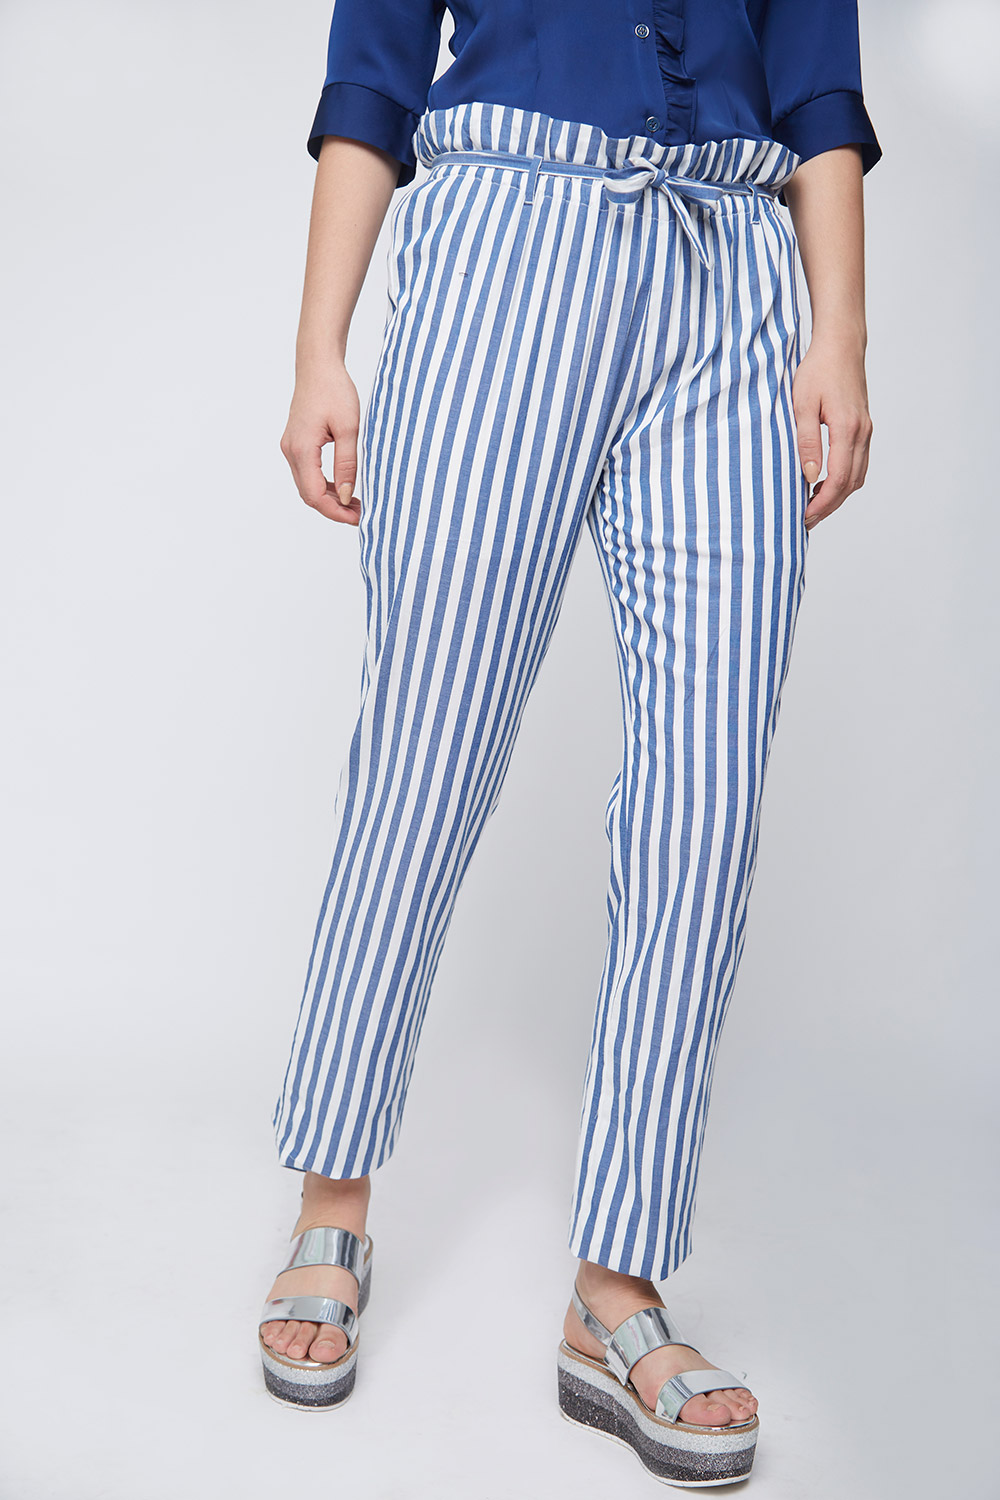 Ruffle Waist Striped Trouser -2